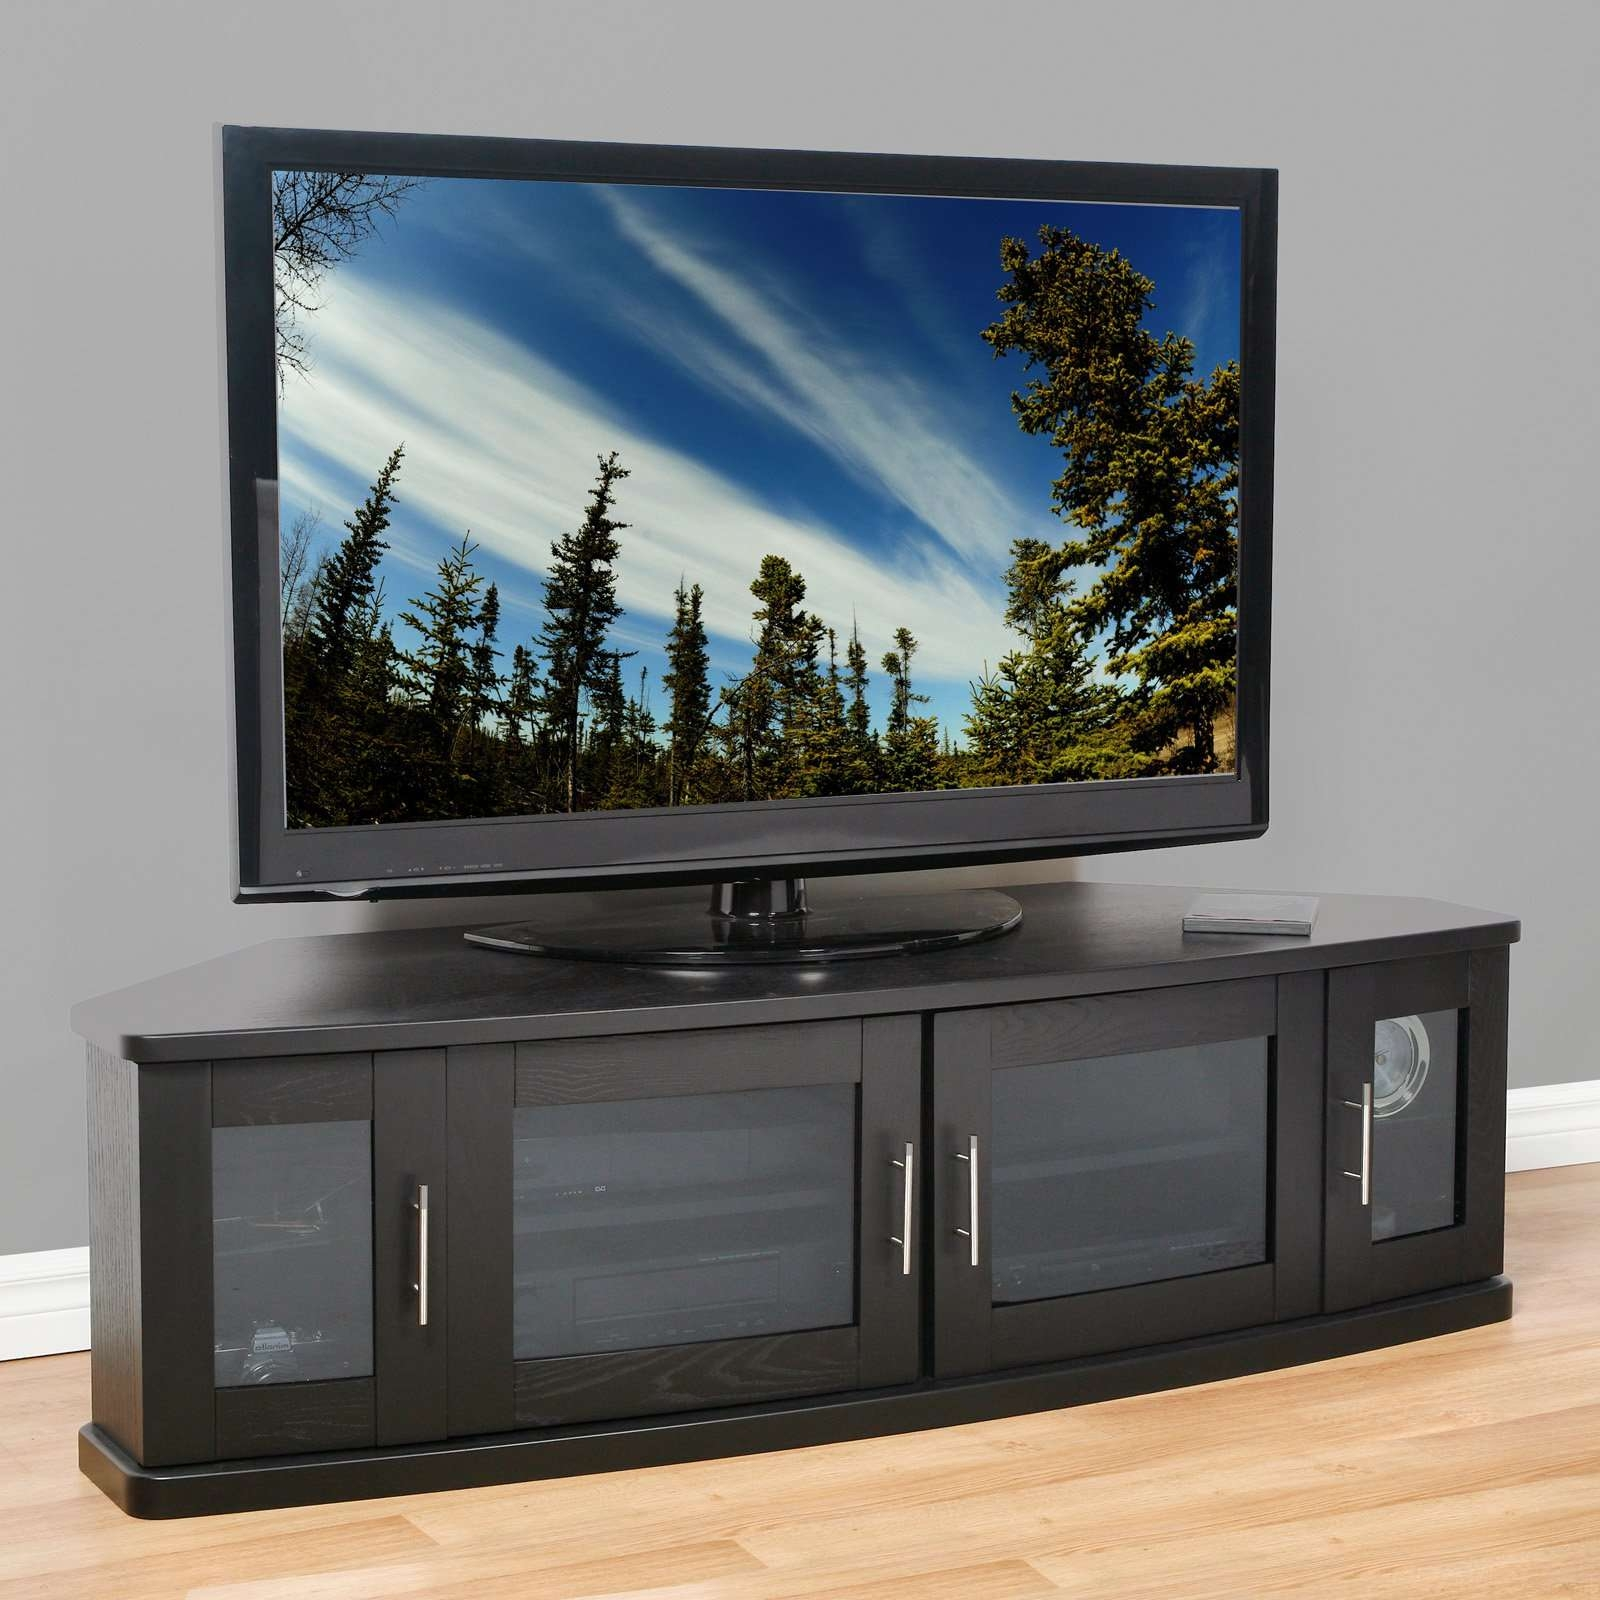 Corner Tv Stand For Inch Flat Screen Furnitures Fascinating On Regarding Corner Tv Stands For 60 Inch Flat Screens (View 5 of 15)